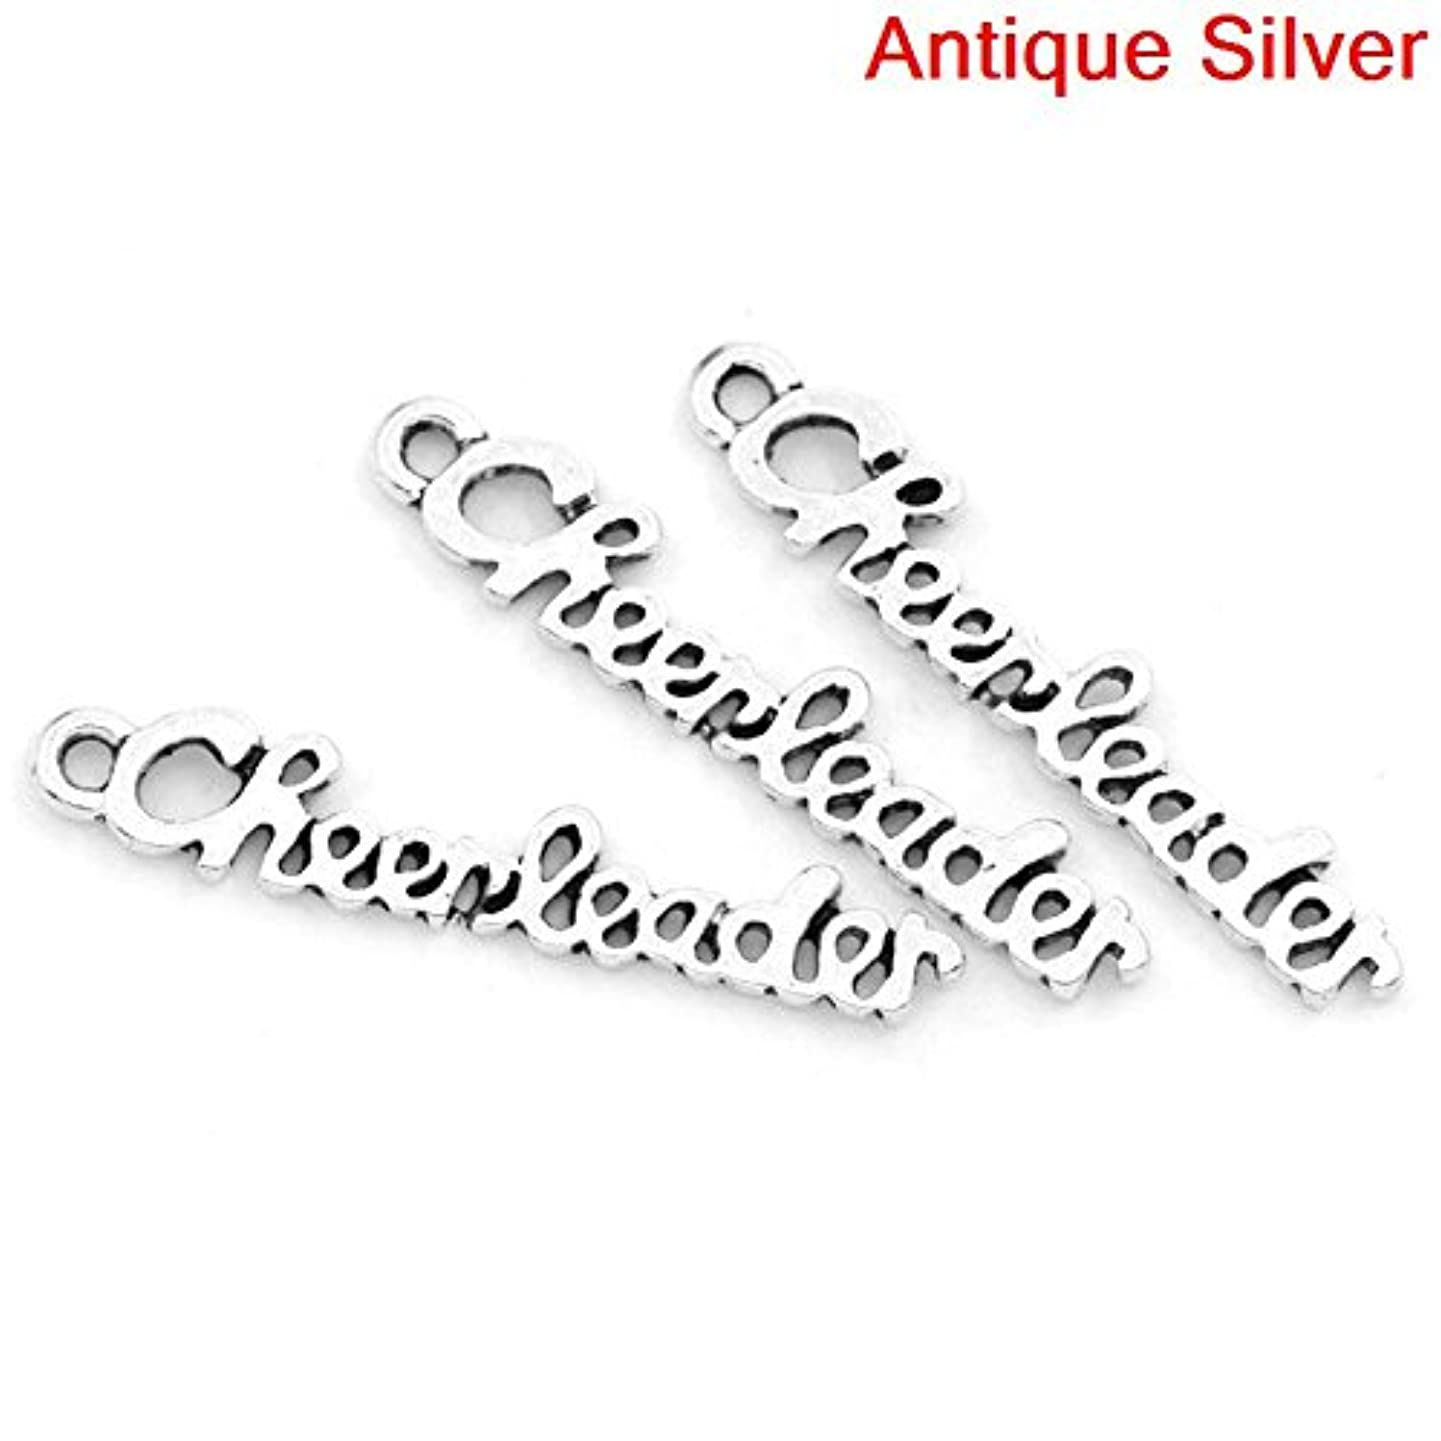 30 Pc Cheerleader - Cheer and School Spirit Silver Tone Charms